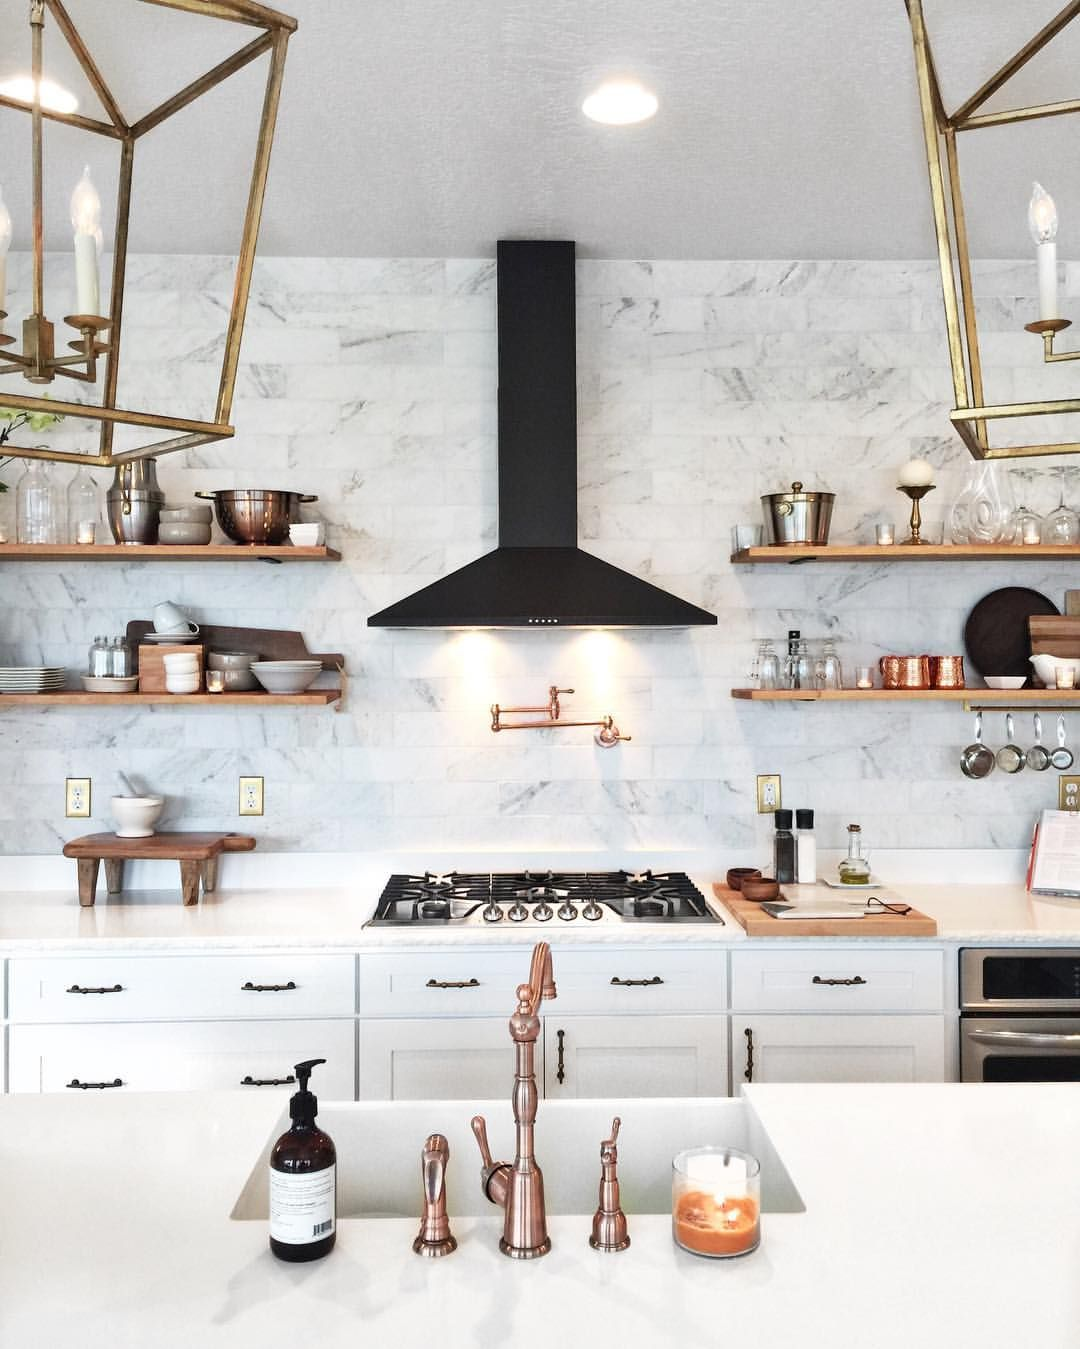 Pin by elle on home pinterest instagram kitchens and interiors